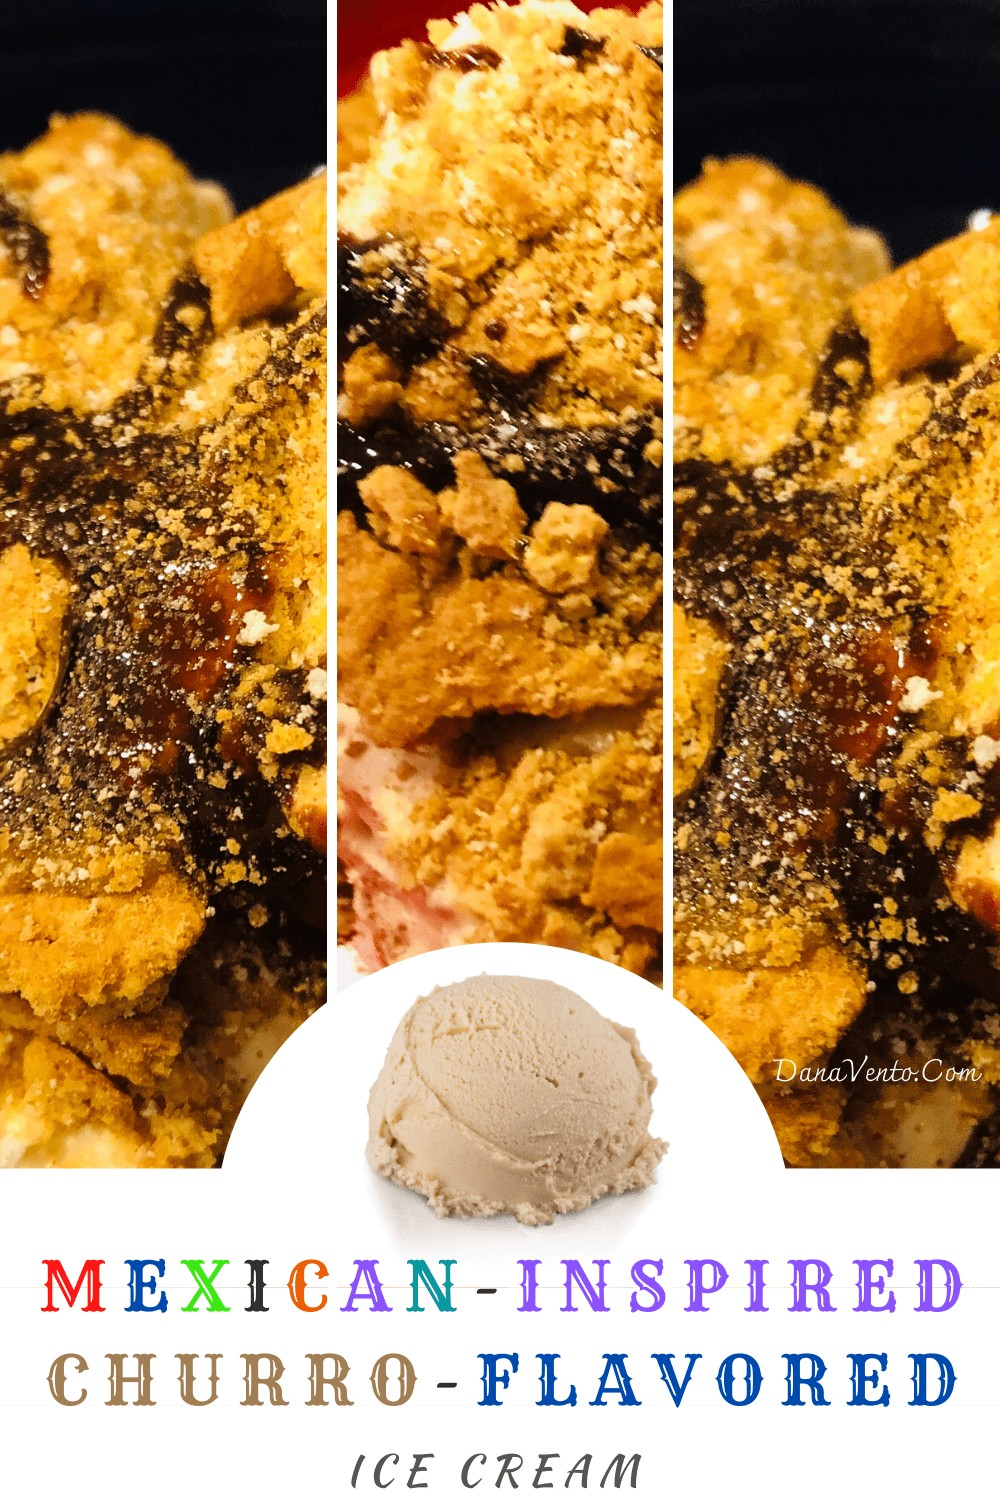 No-Churn Mexican-Inspired Churro-Flavored Ice Cream